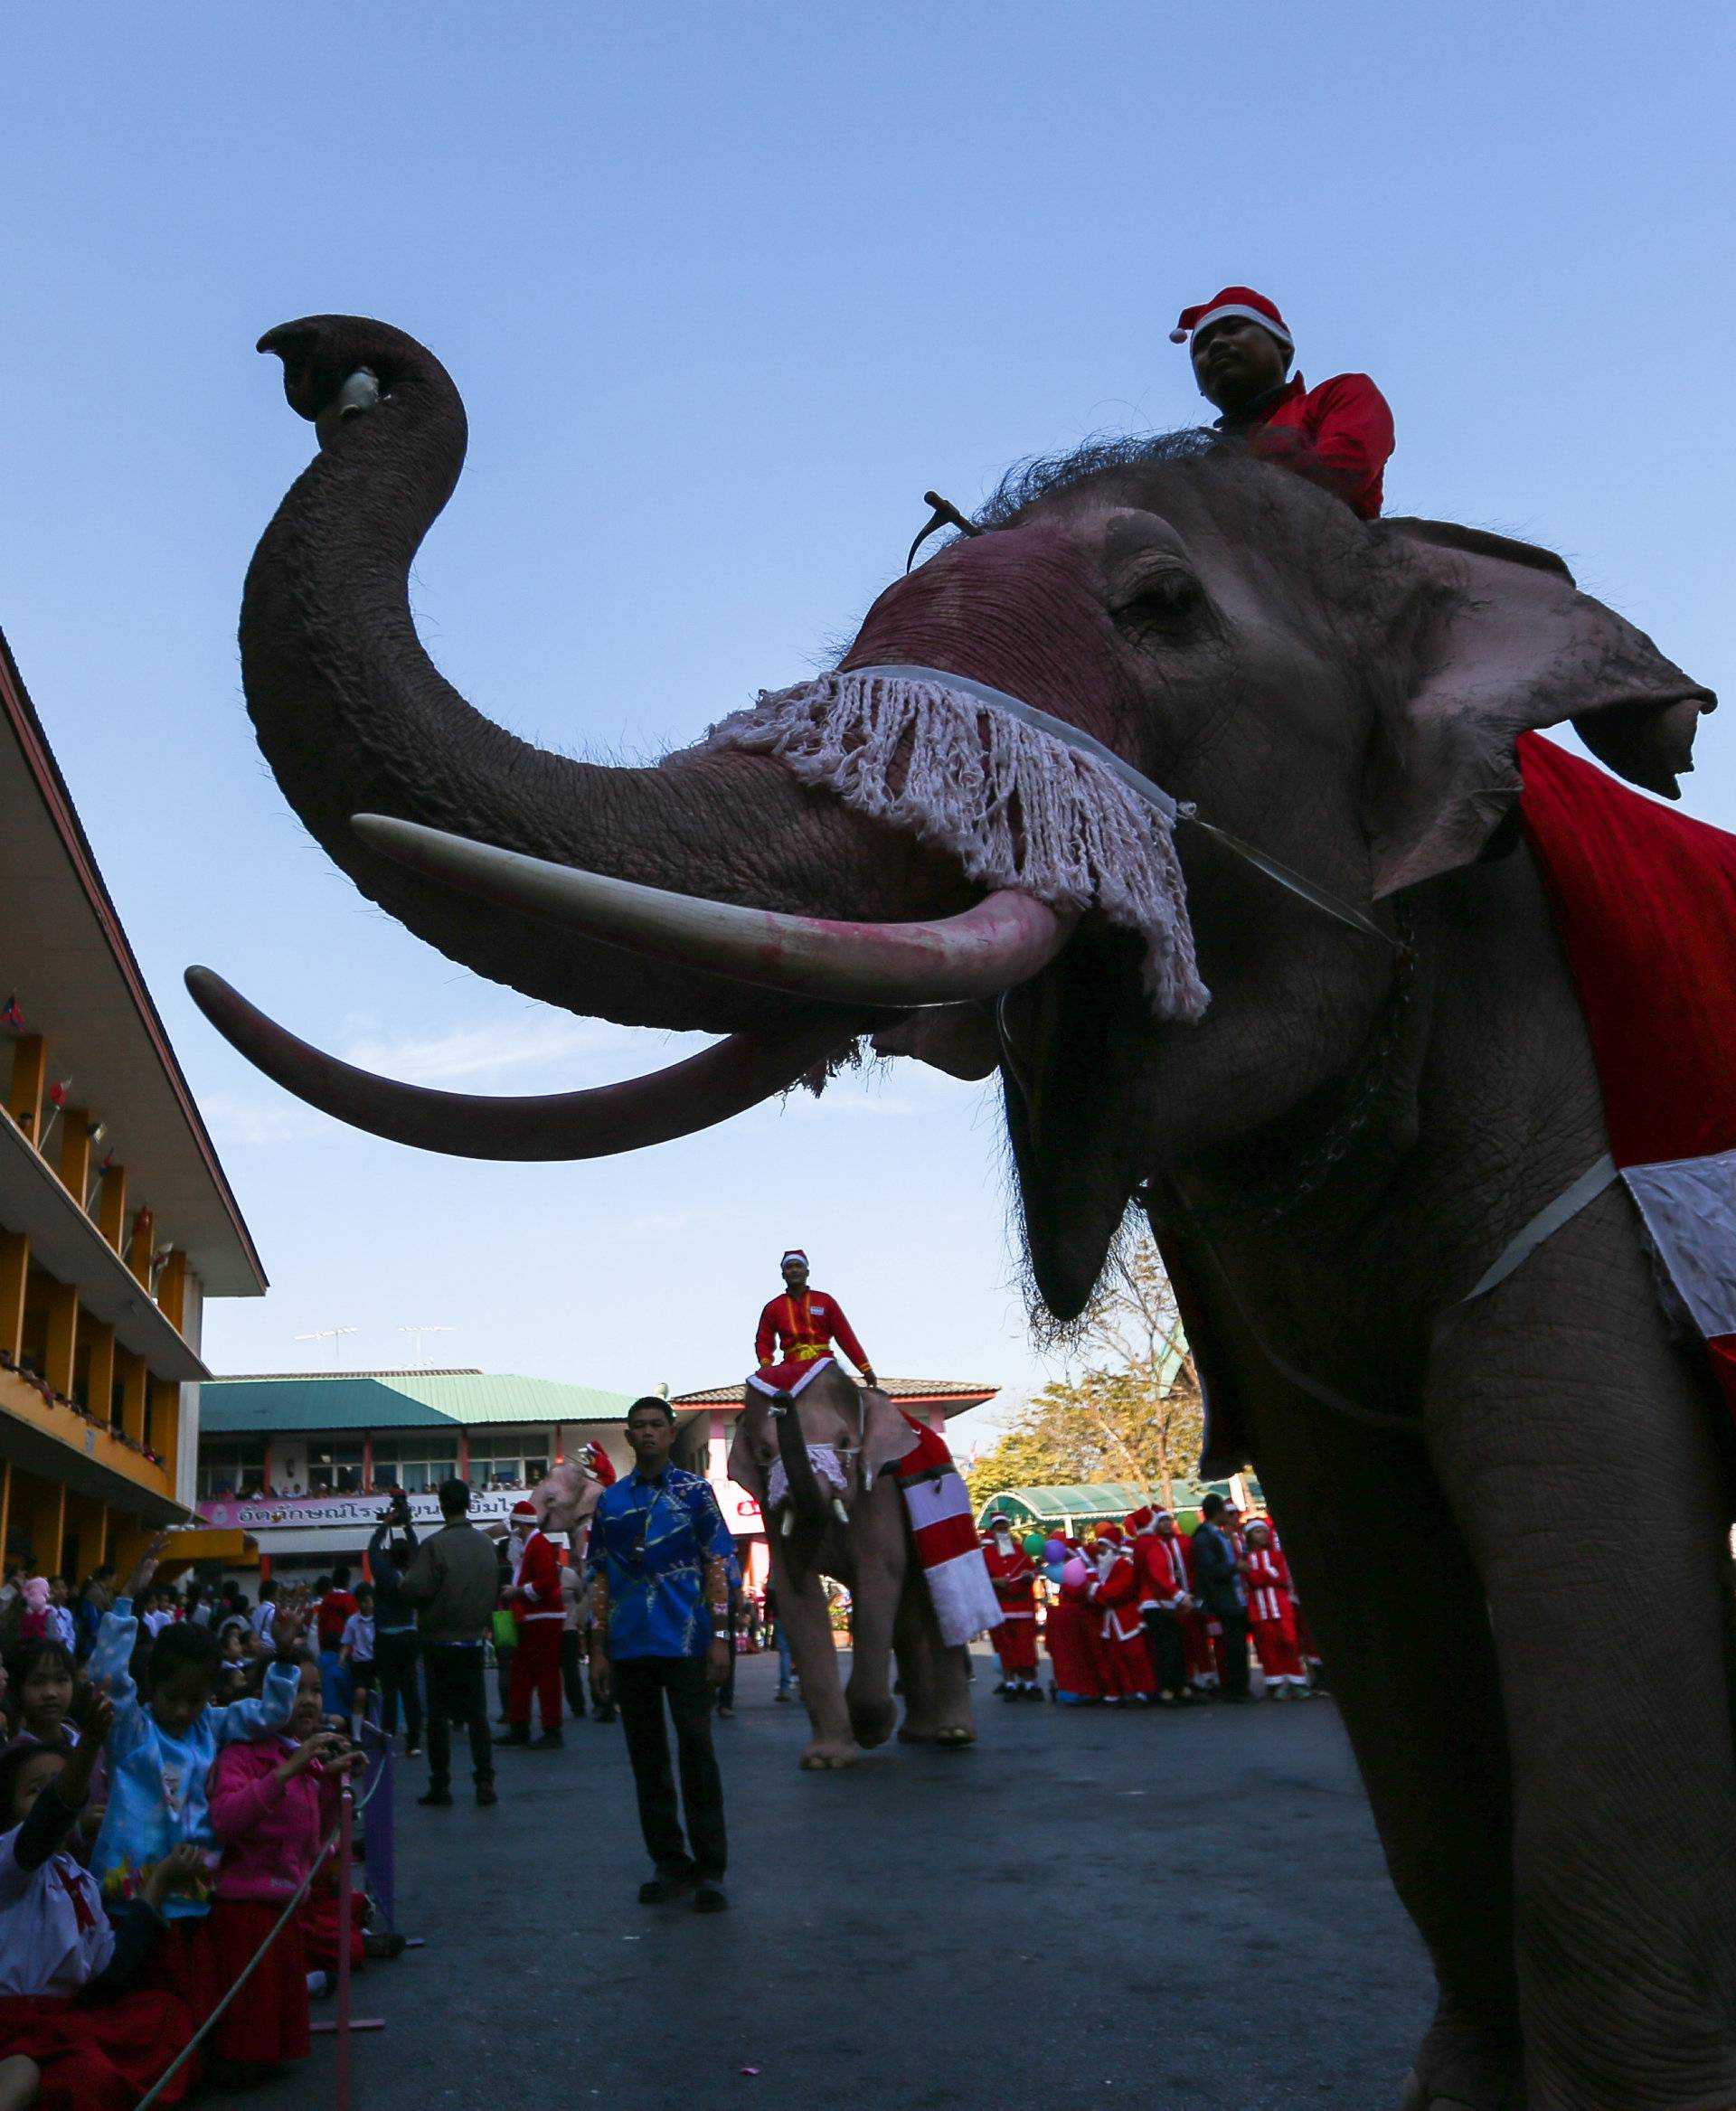 Elephants dressed in Santa Claus costumes distribute gifts to students during Christmas celebrations at Jirasart school in Ayutthaya